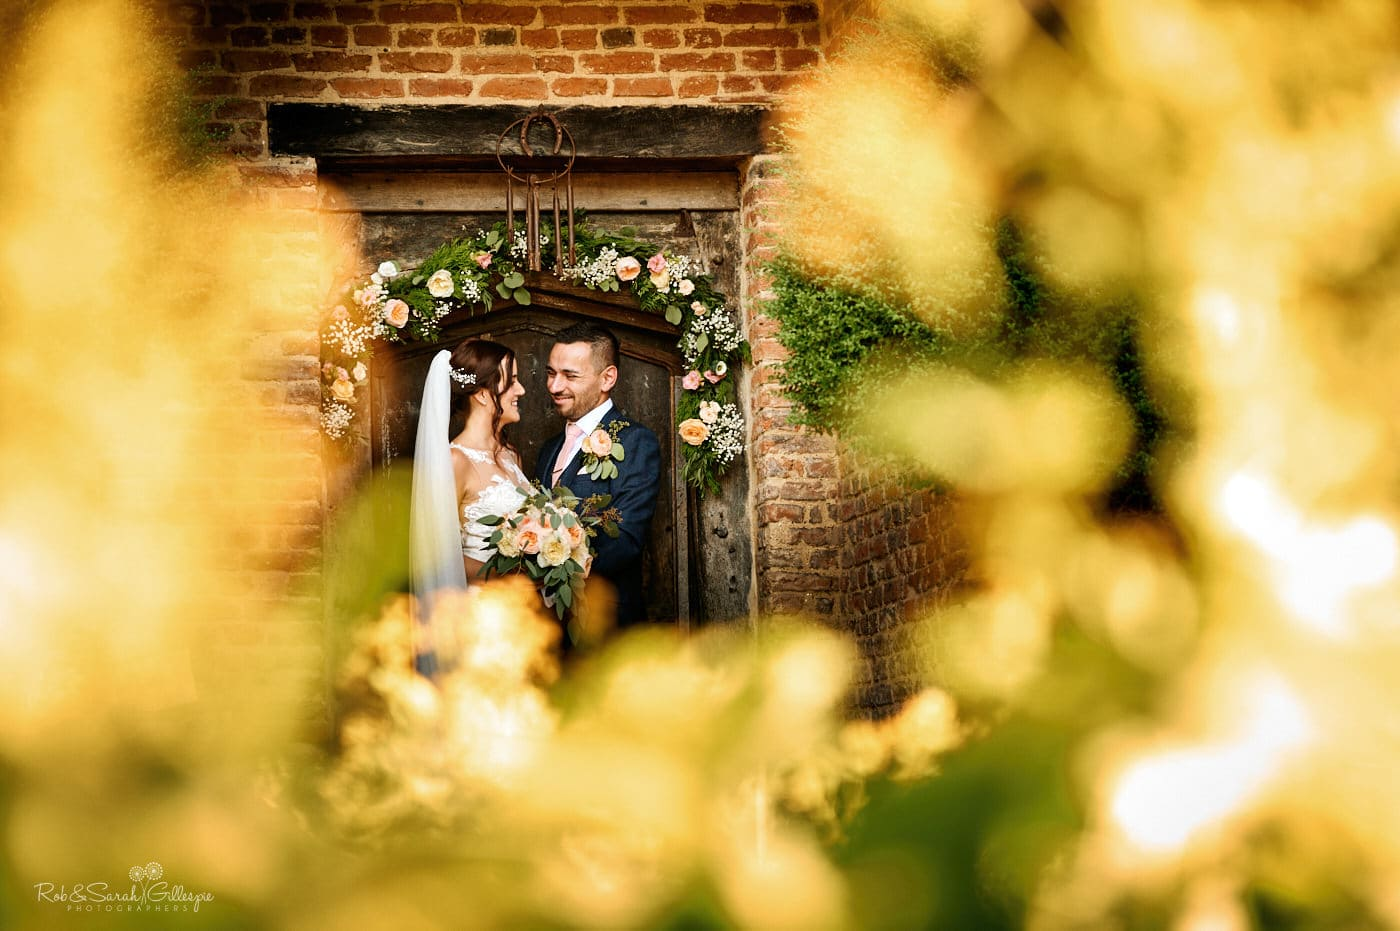 Bride and groom in doorway at Gorcott Hall surrounded by bright yellow flowers